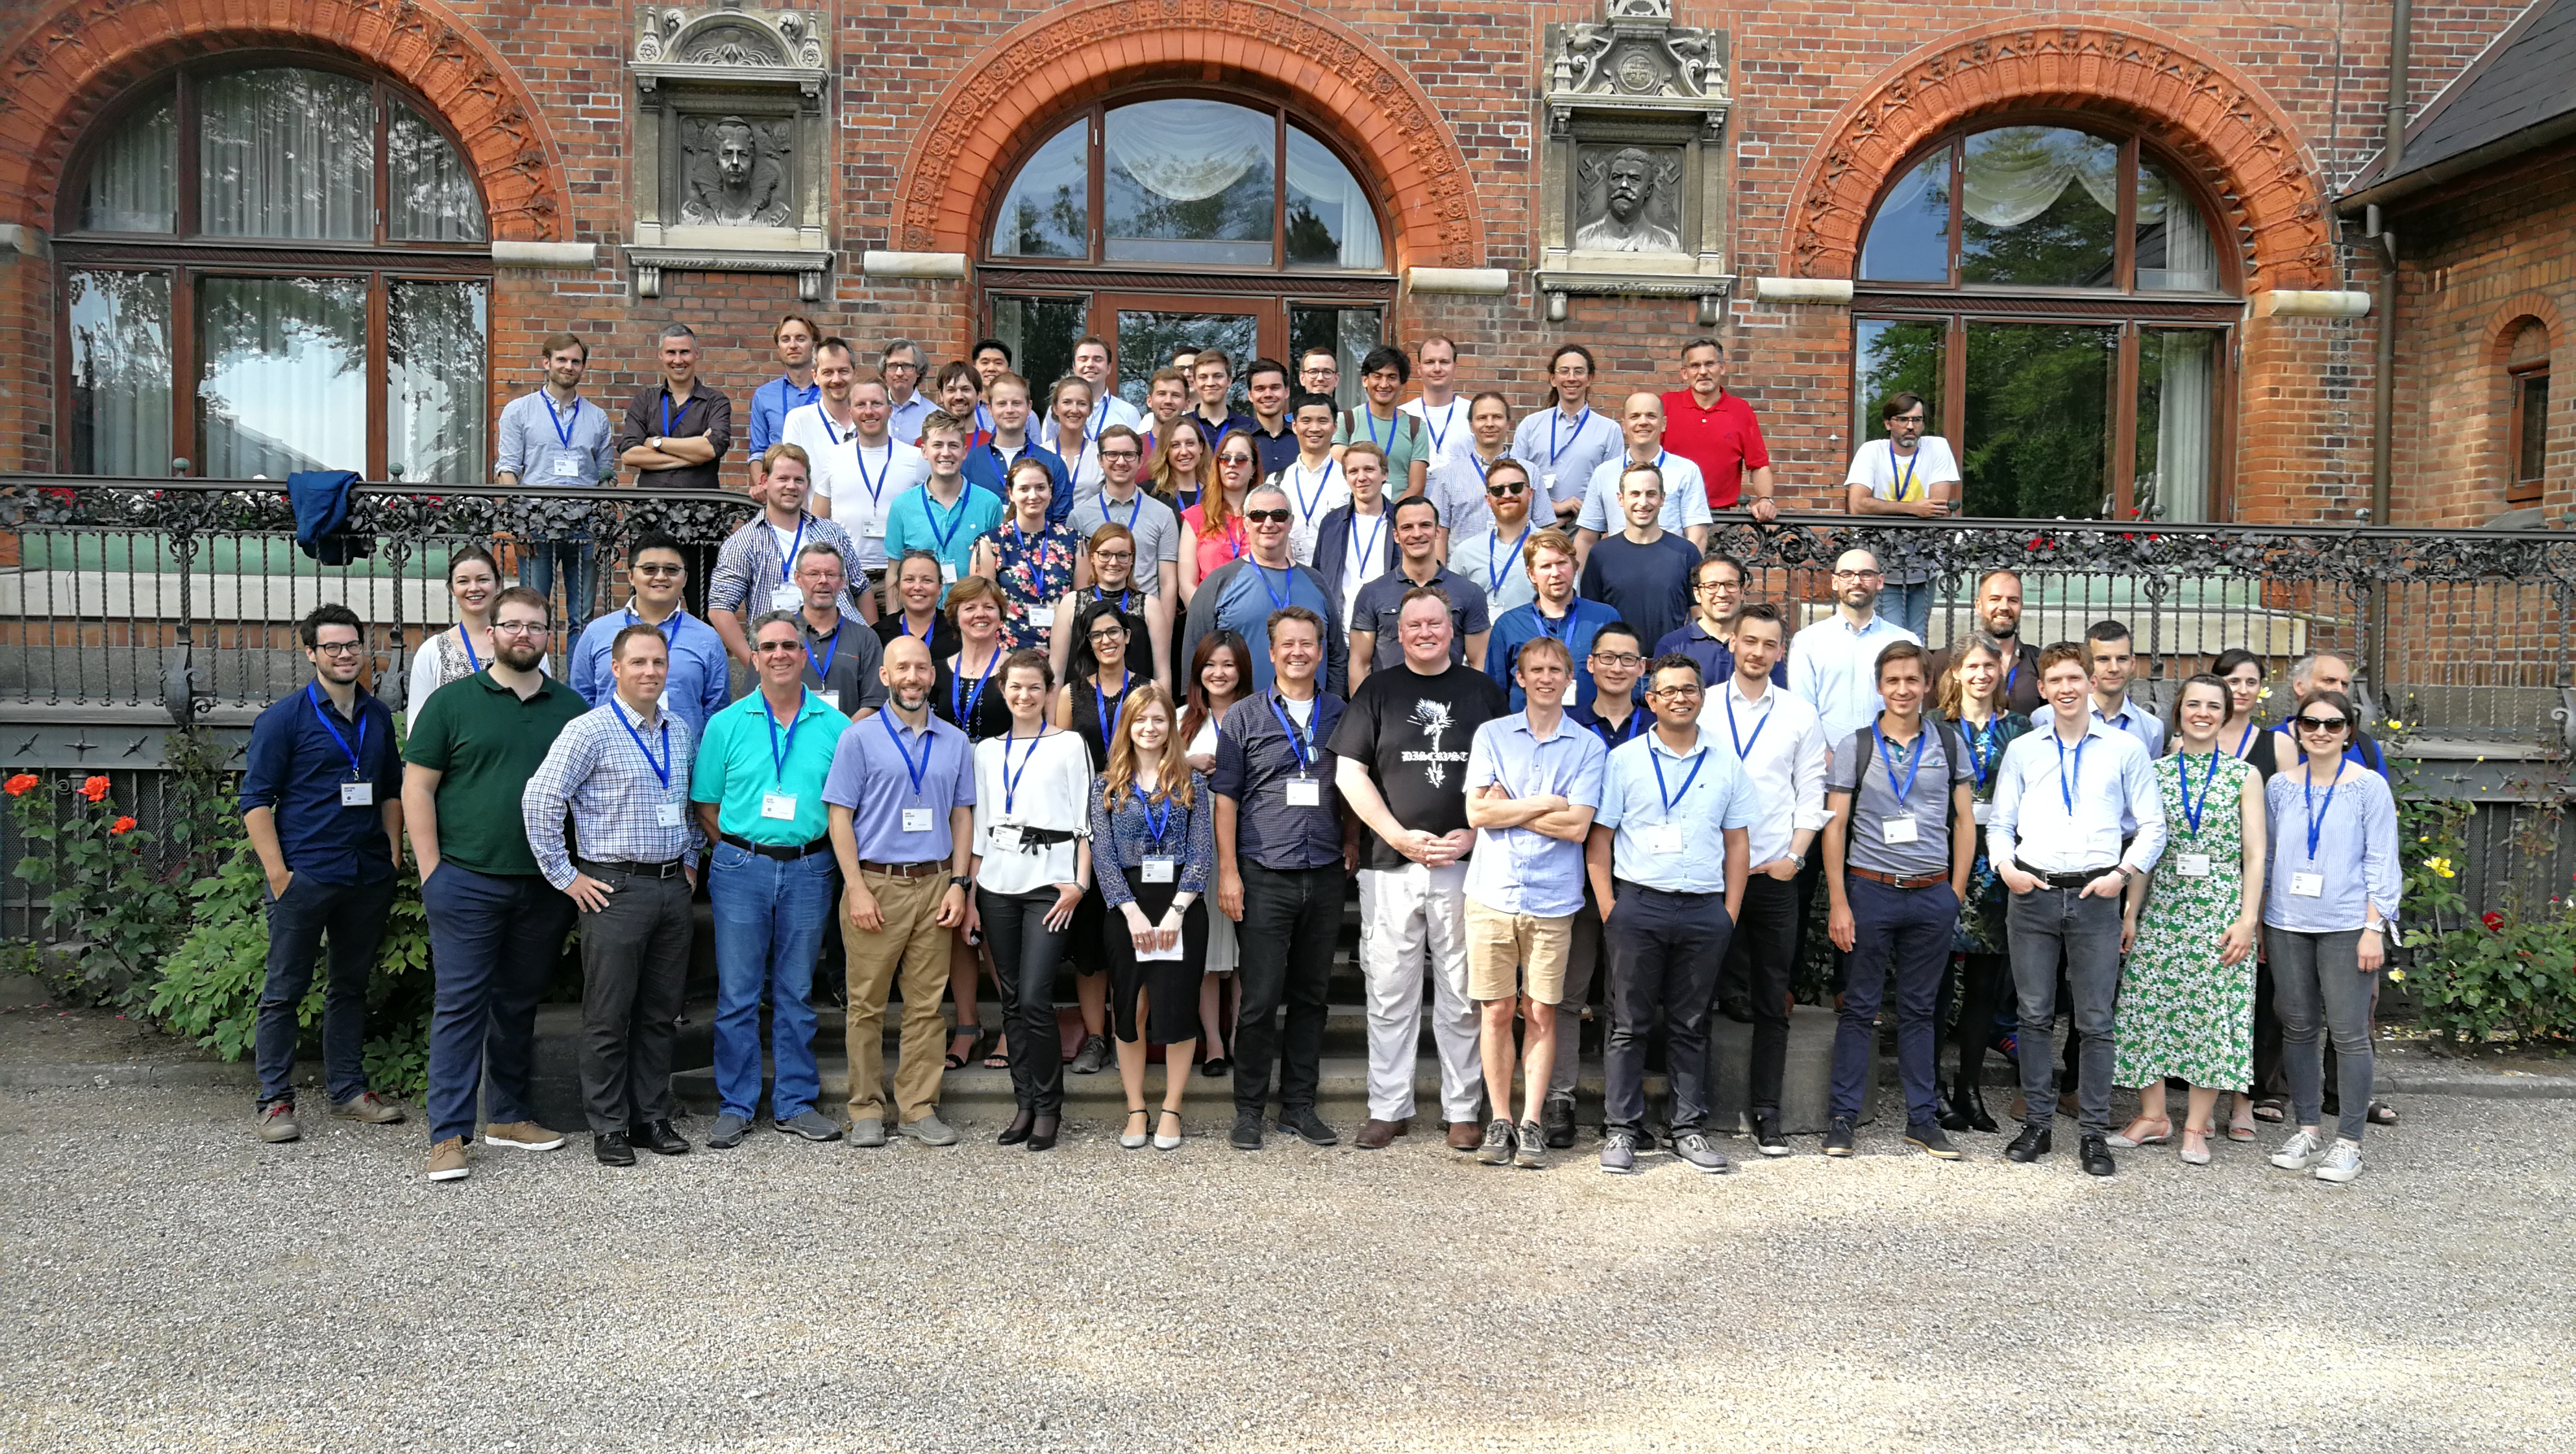 SEF 2019 attendees